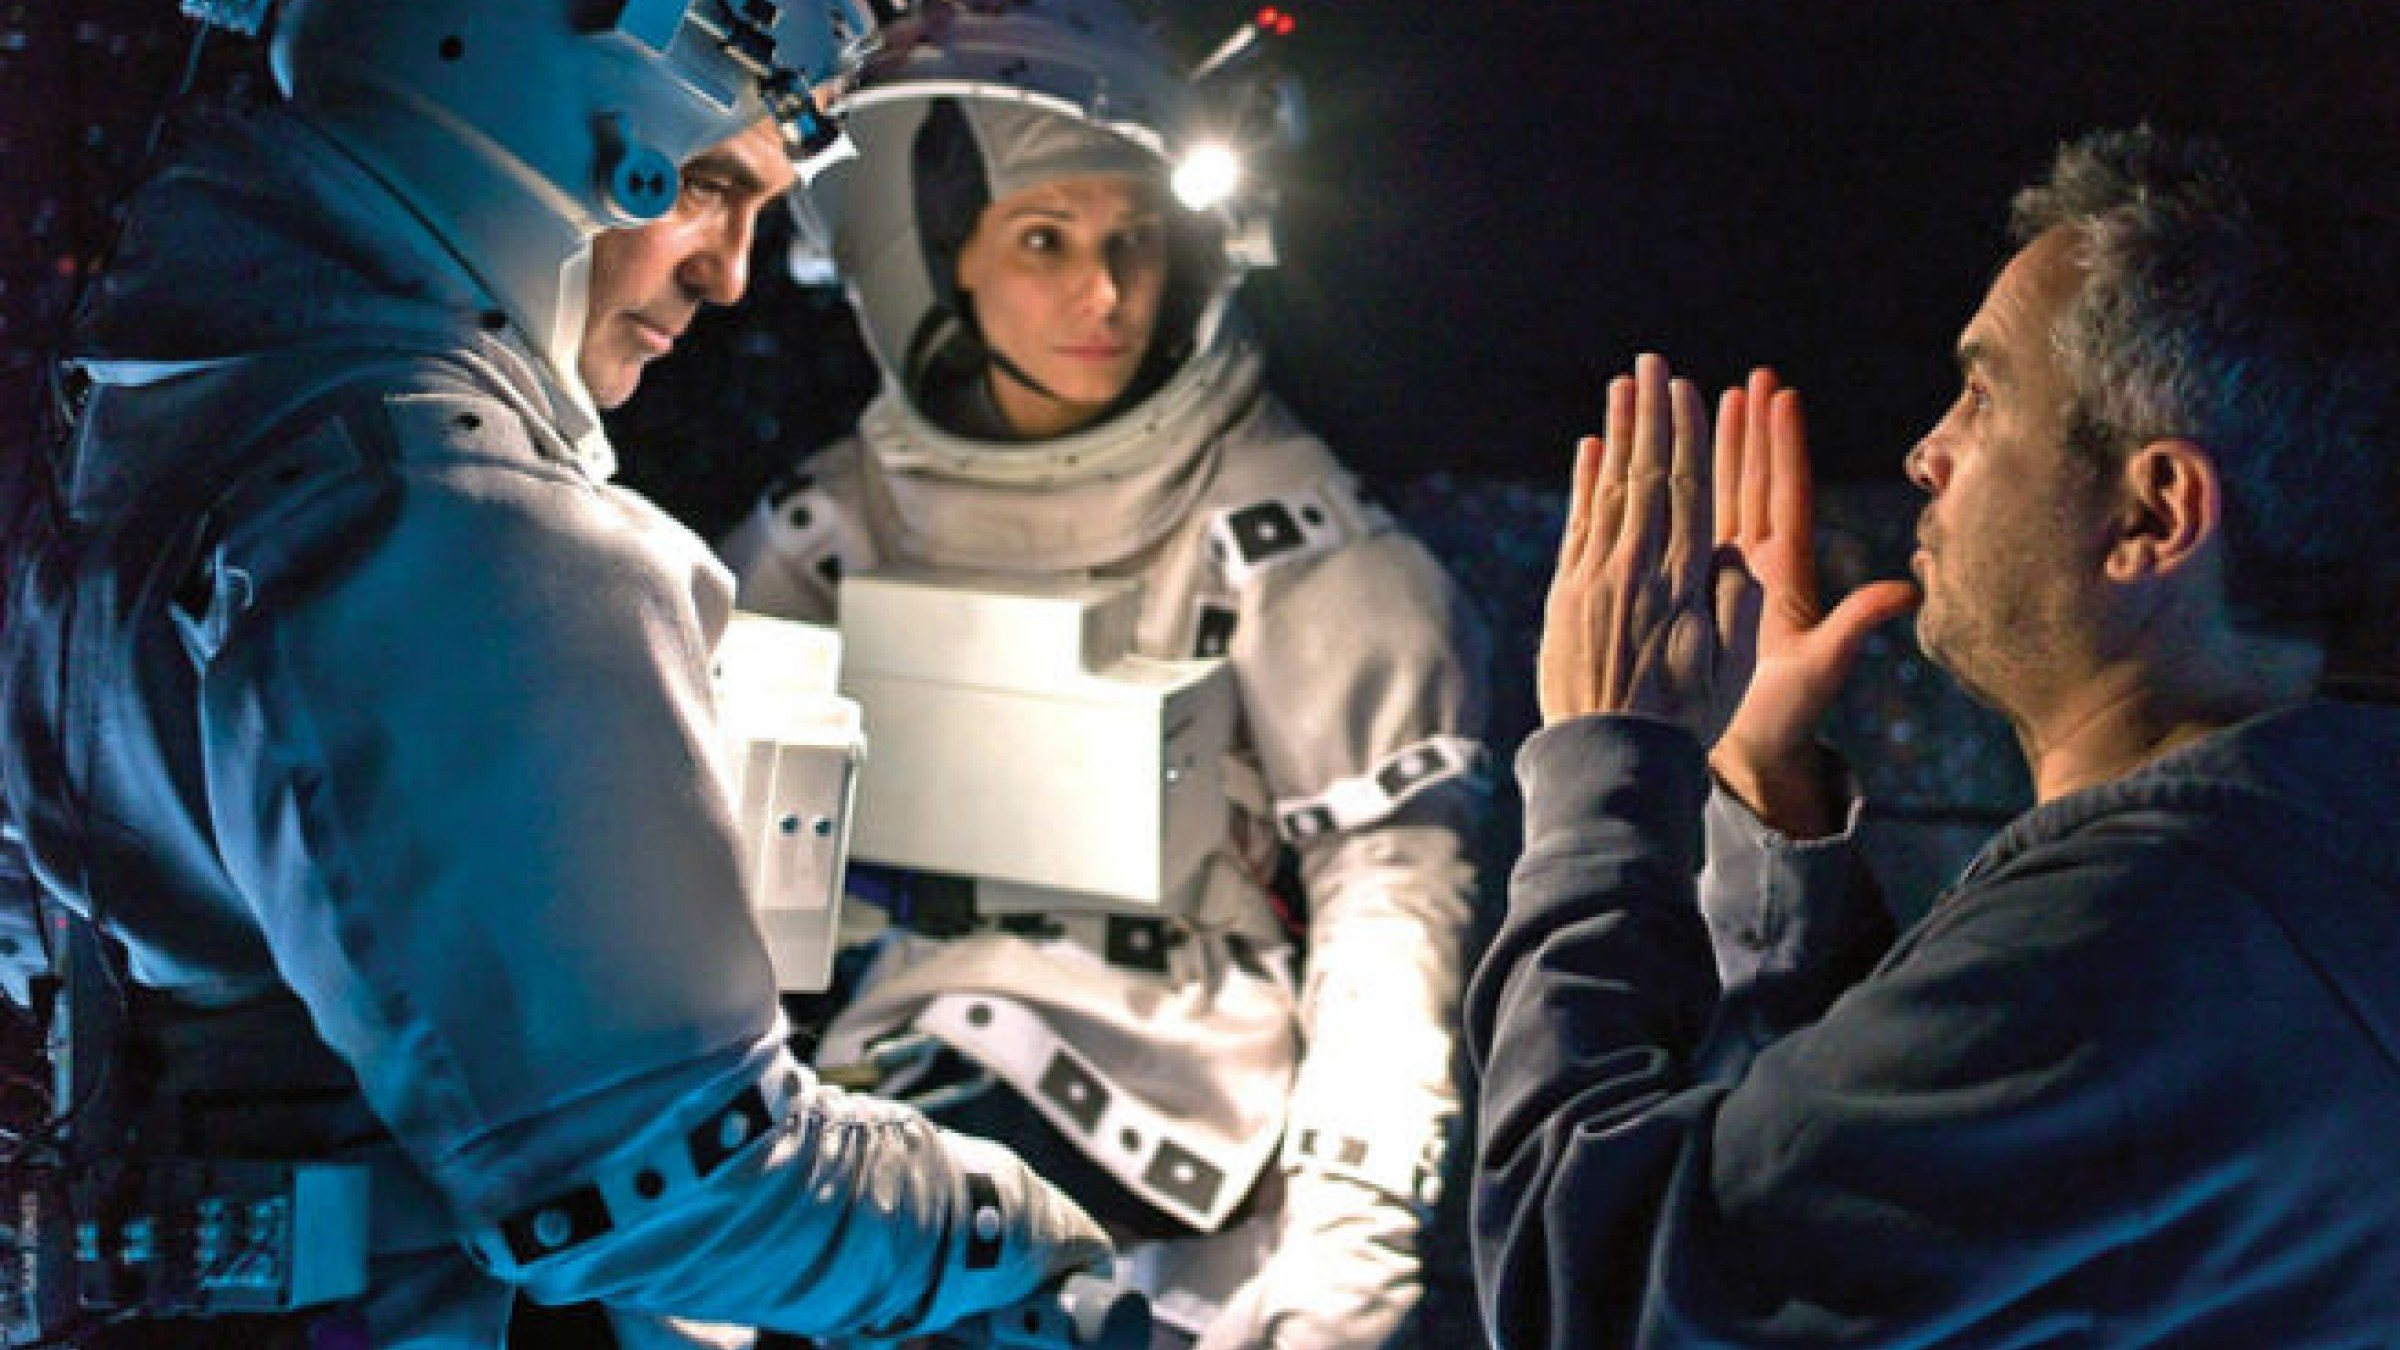 Alfonso Cuarón Takes Us on a Journey Through Each Stage of Production for 'Gravity'